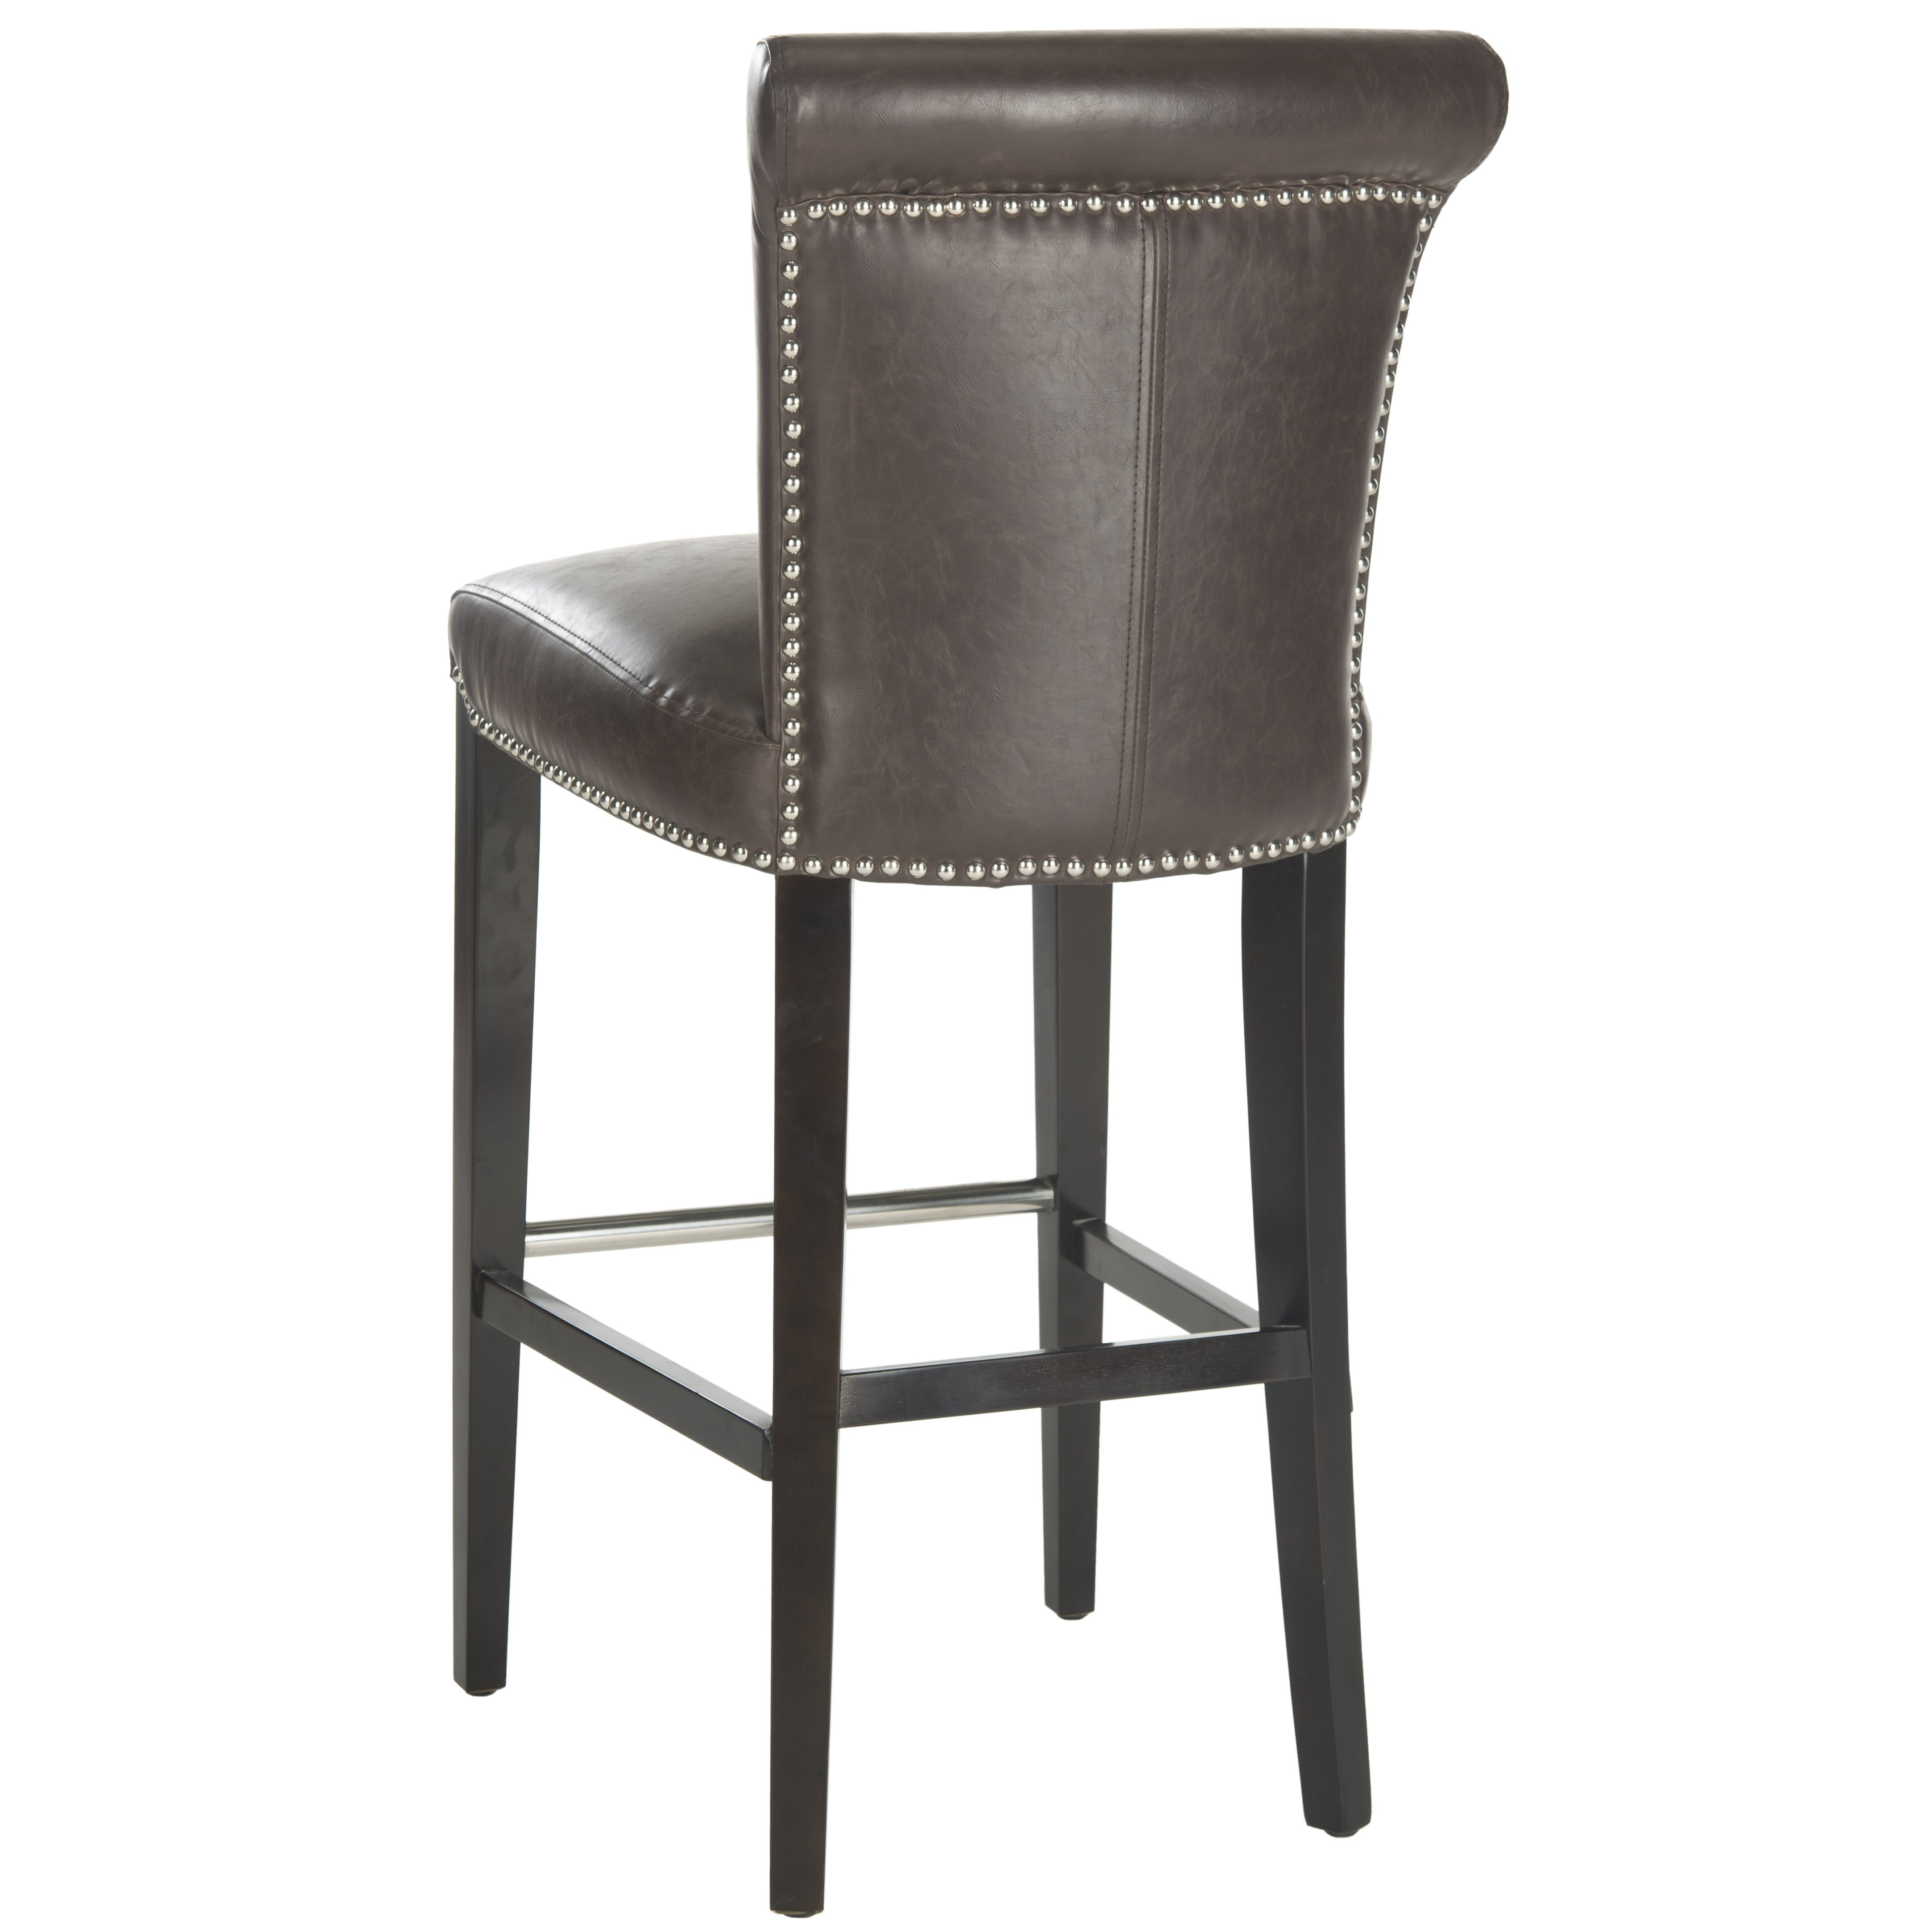 Safavieh Seth 30quot Bar Stool with Cushion amp Reviews Wayfair : Seth 30 Bar Stool with Cushion MCR4510G from www.wayfair.com size 4332 x 4332 jpeg 826kB